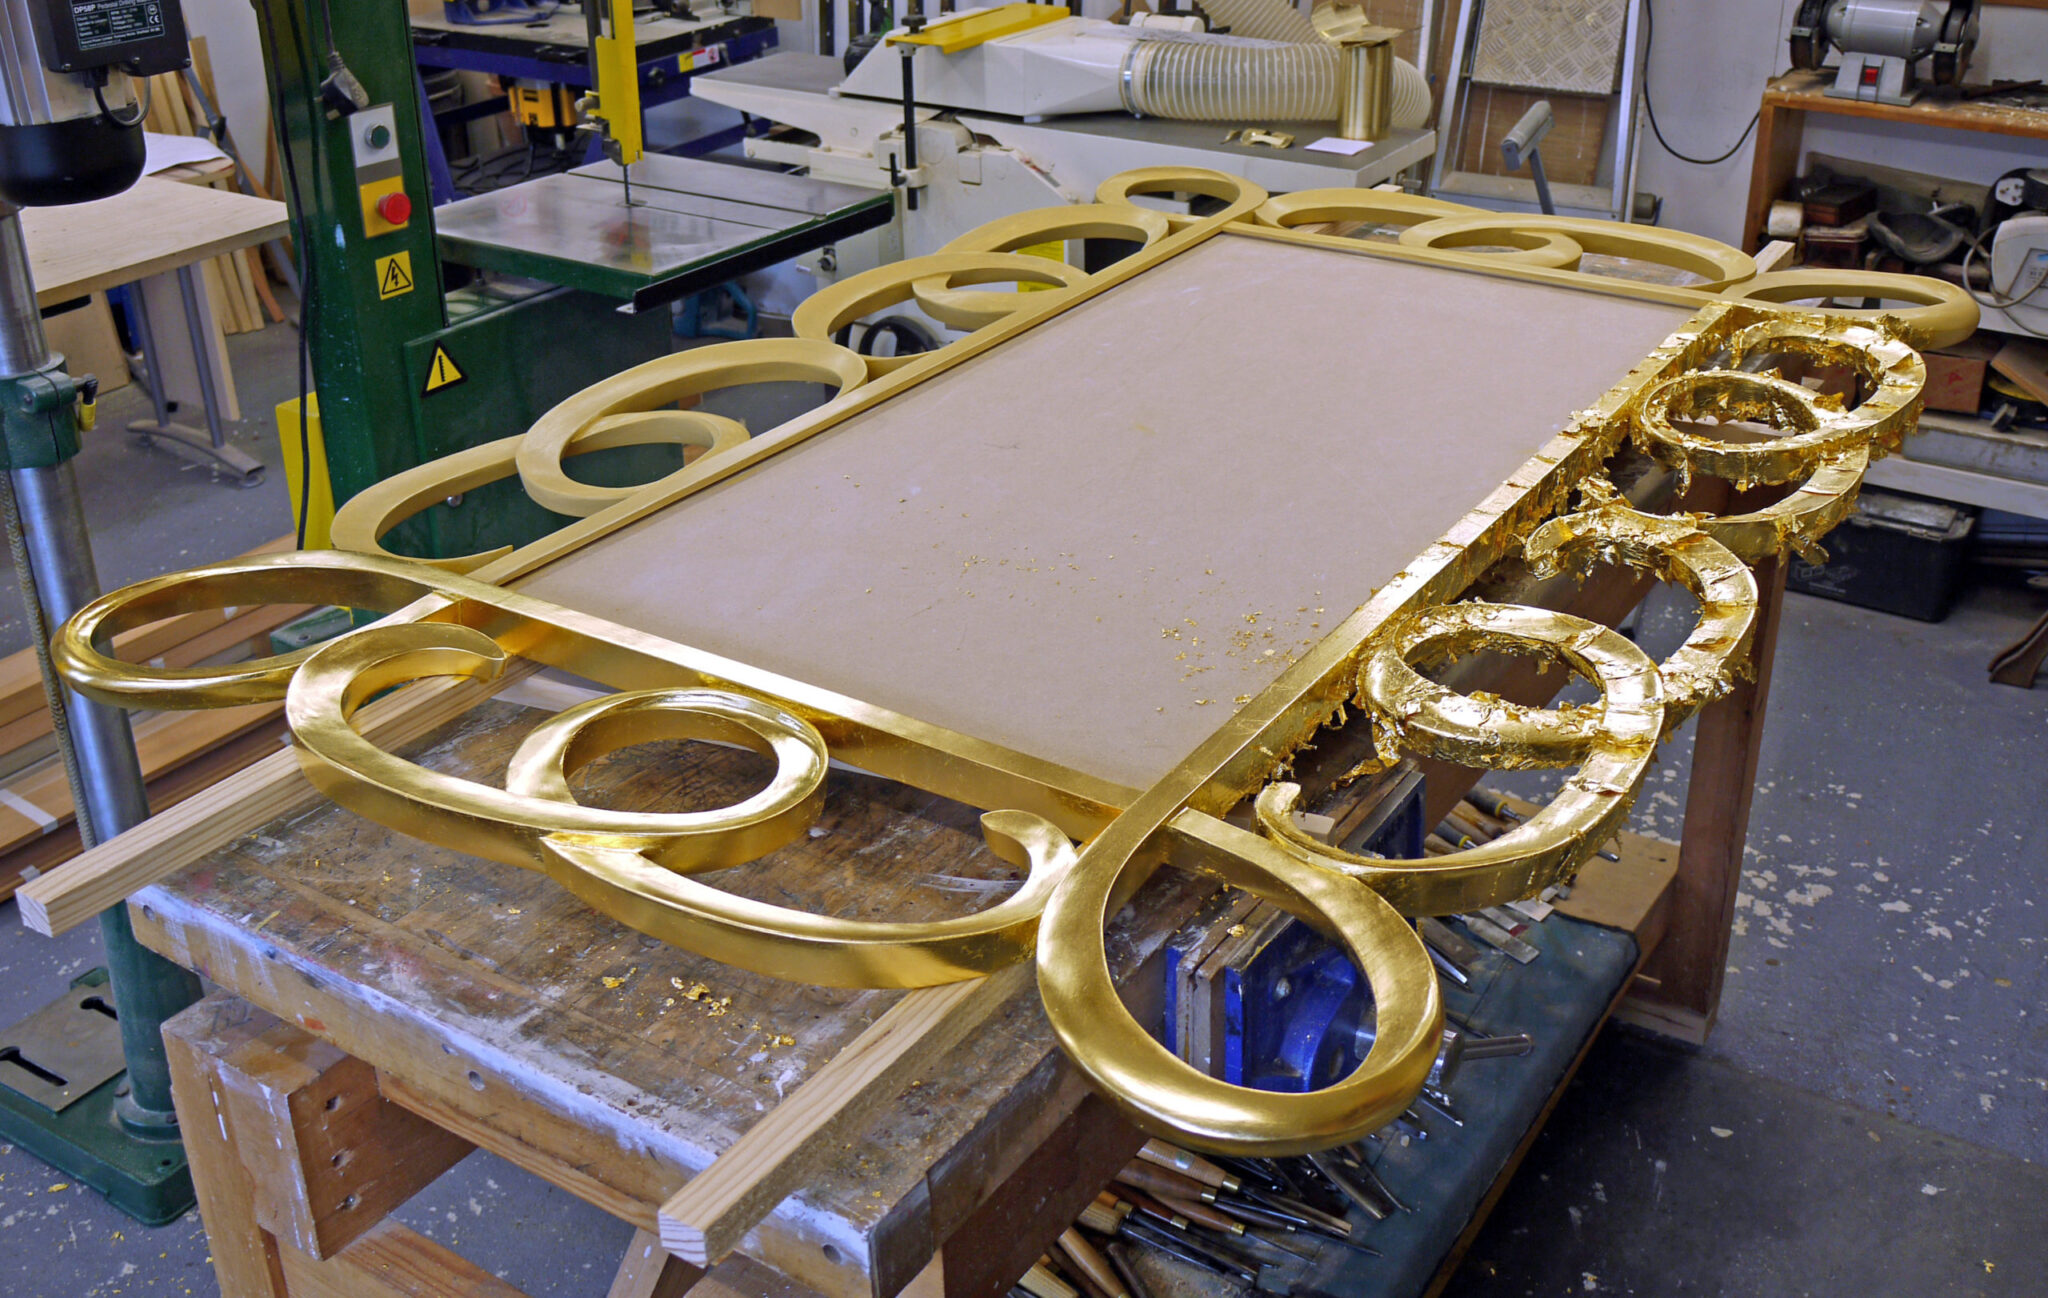 Oil gilding to contemporary mirror frame wood carvers and gilders - Oil Gilding To Contemporary Mirror Frame Wood Carvers